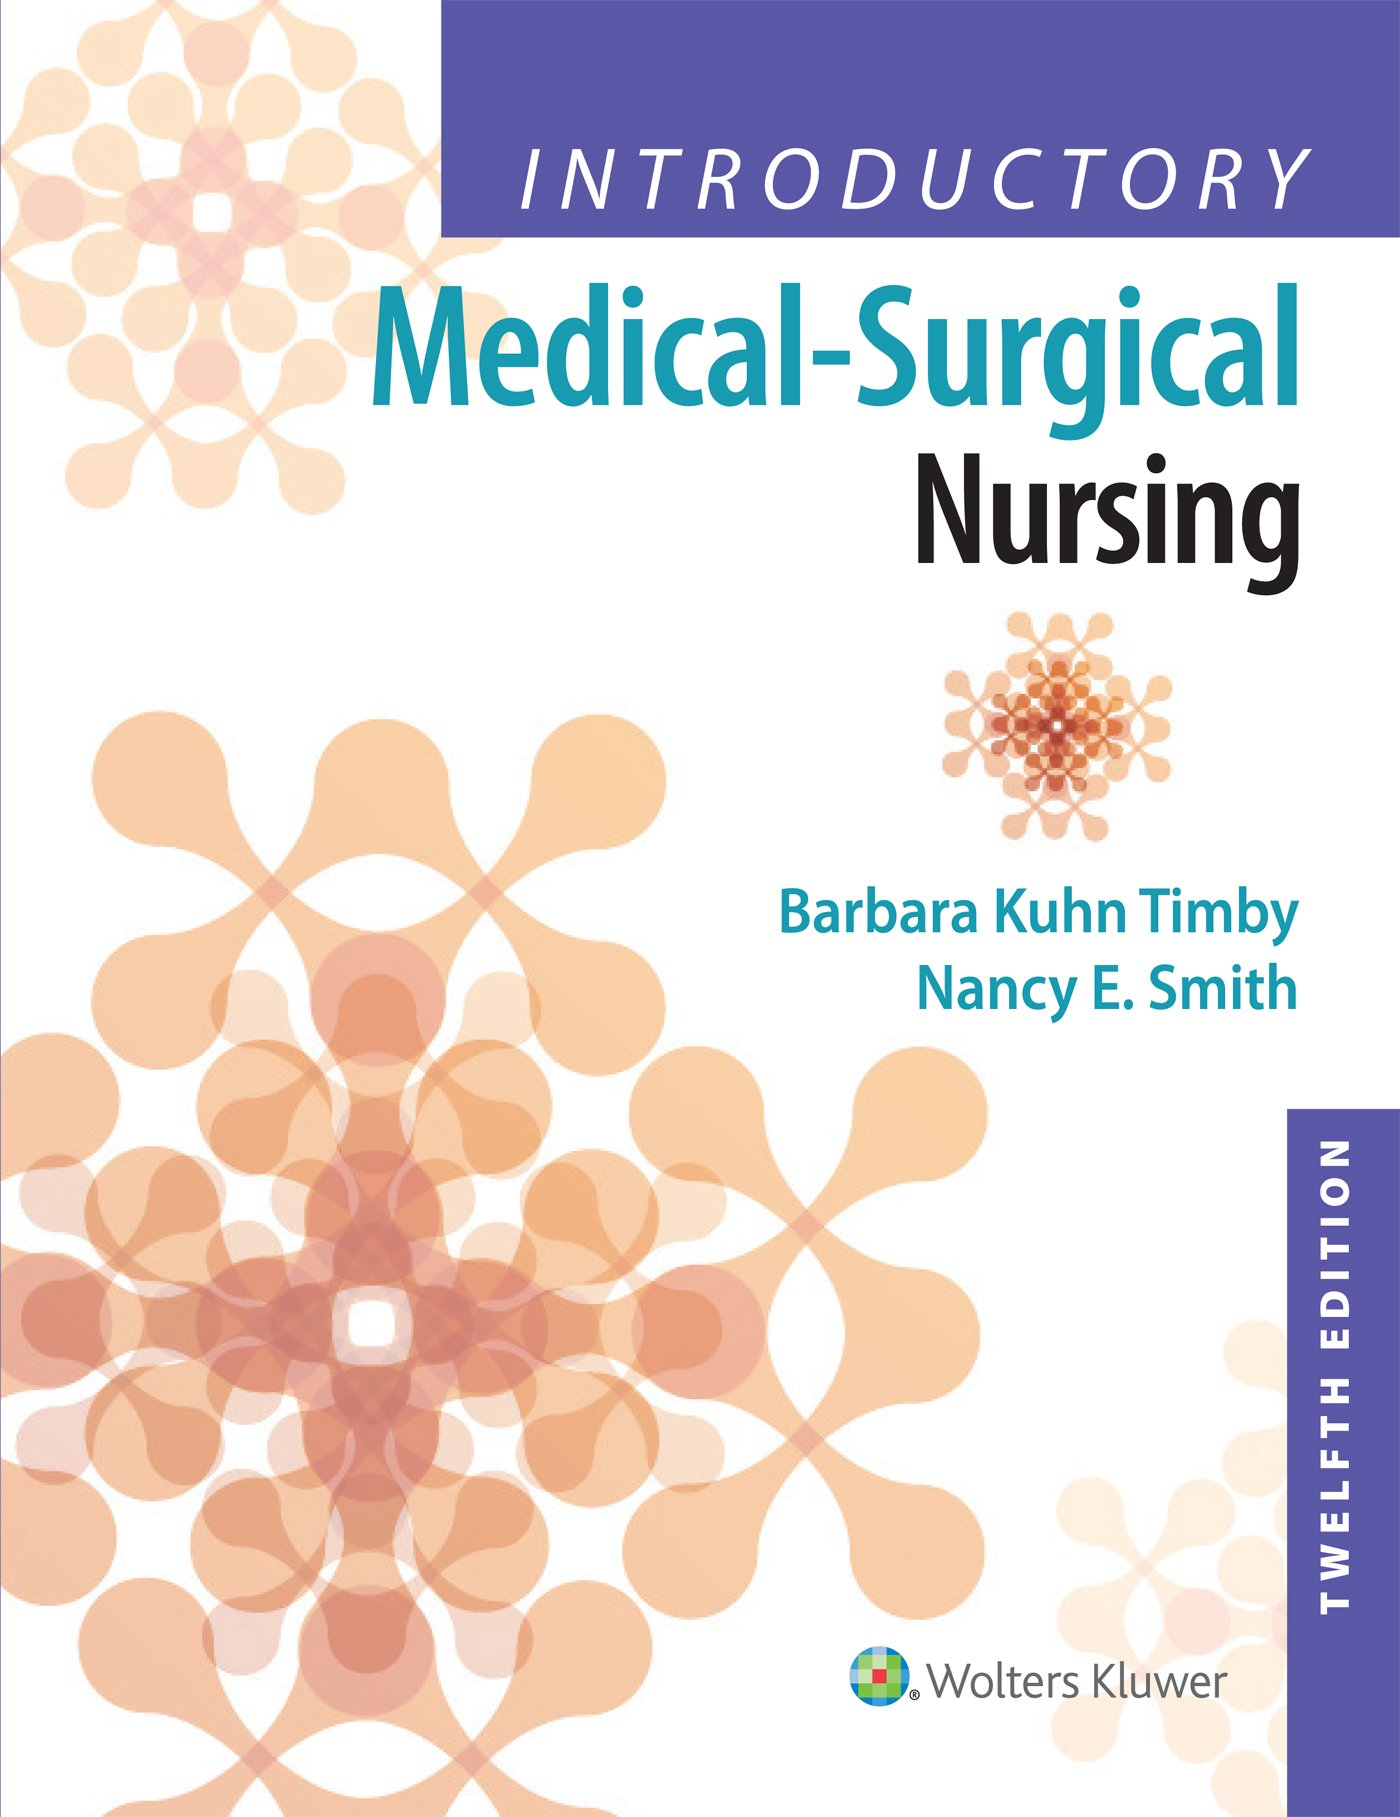 Introductory Medical-Surgical Nursing by LWW